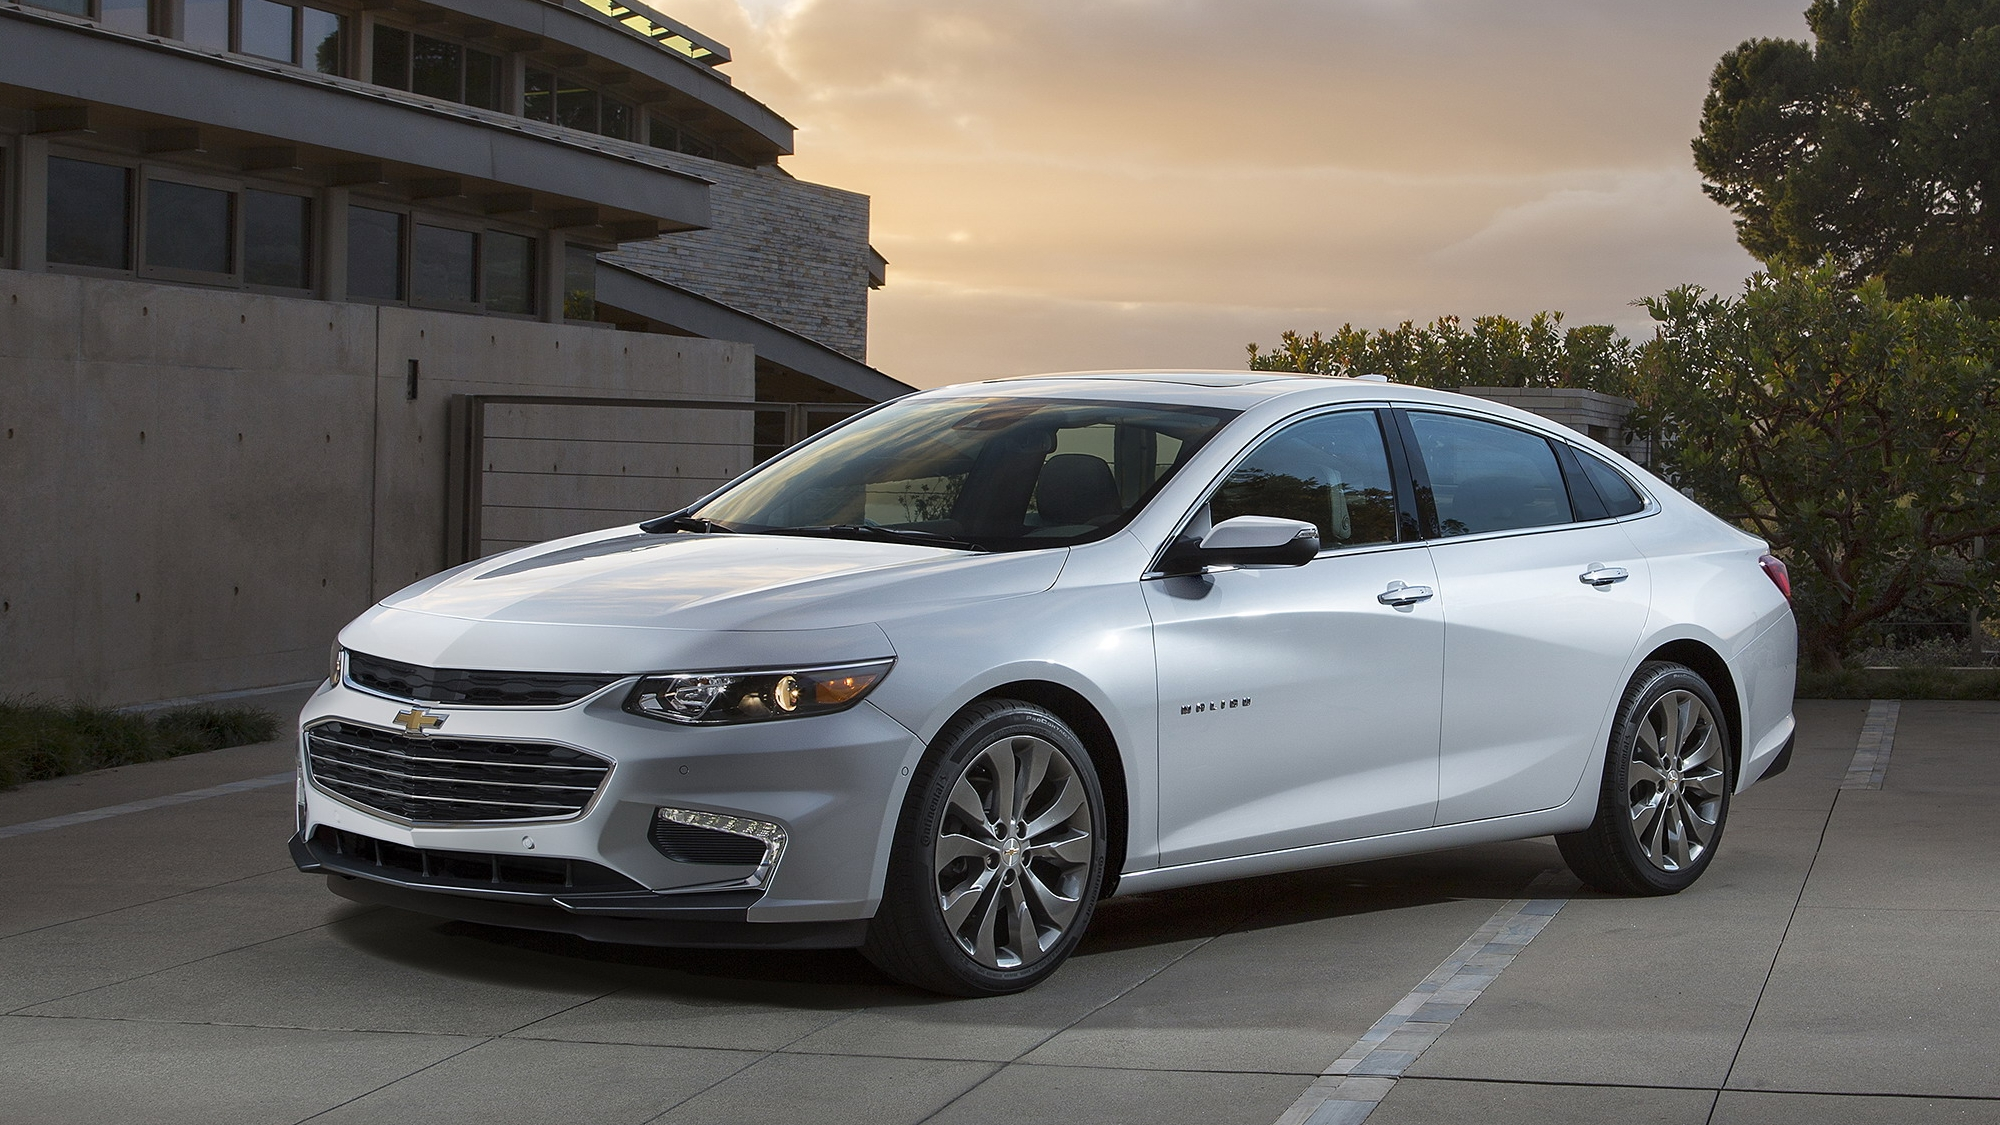 Chevrolet Malibu Reviews, Specs, Prices, Photos And Videos | Top Speed. »